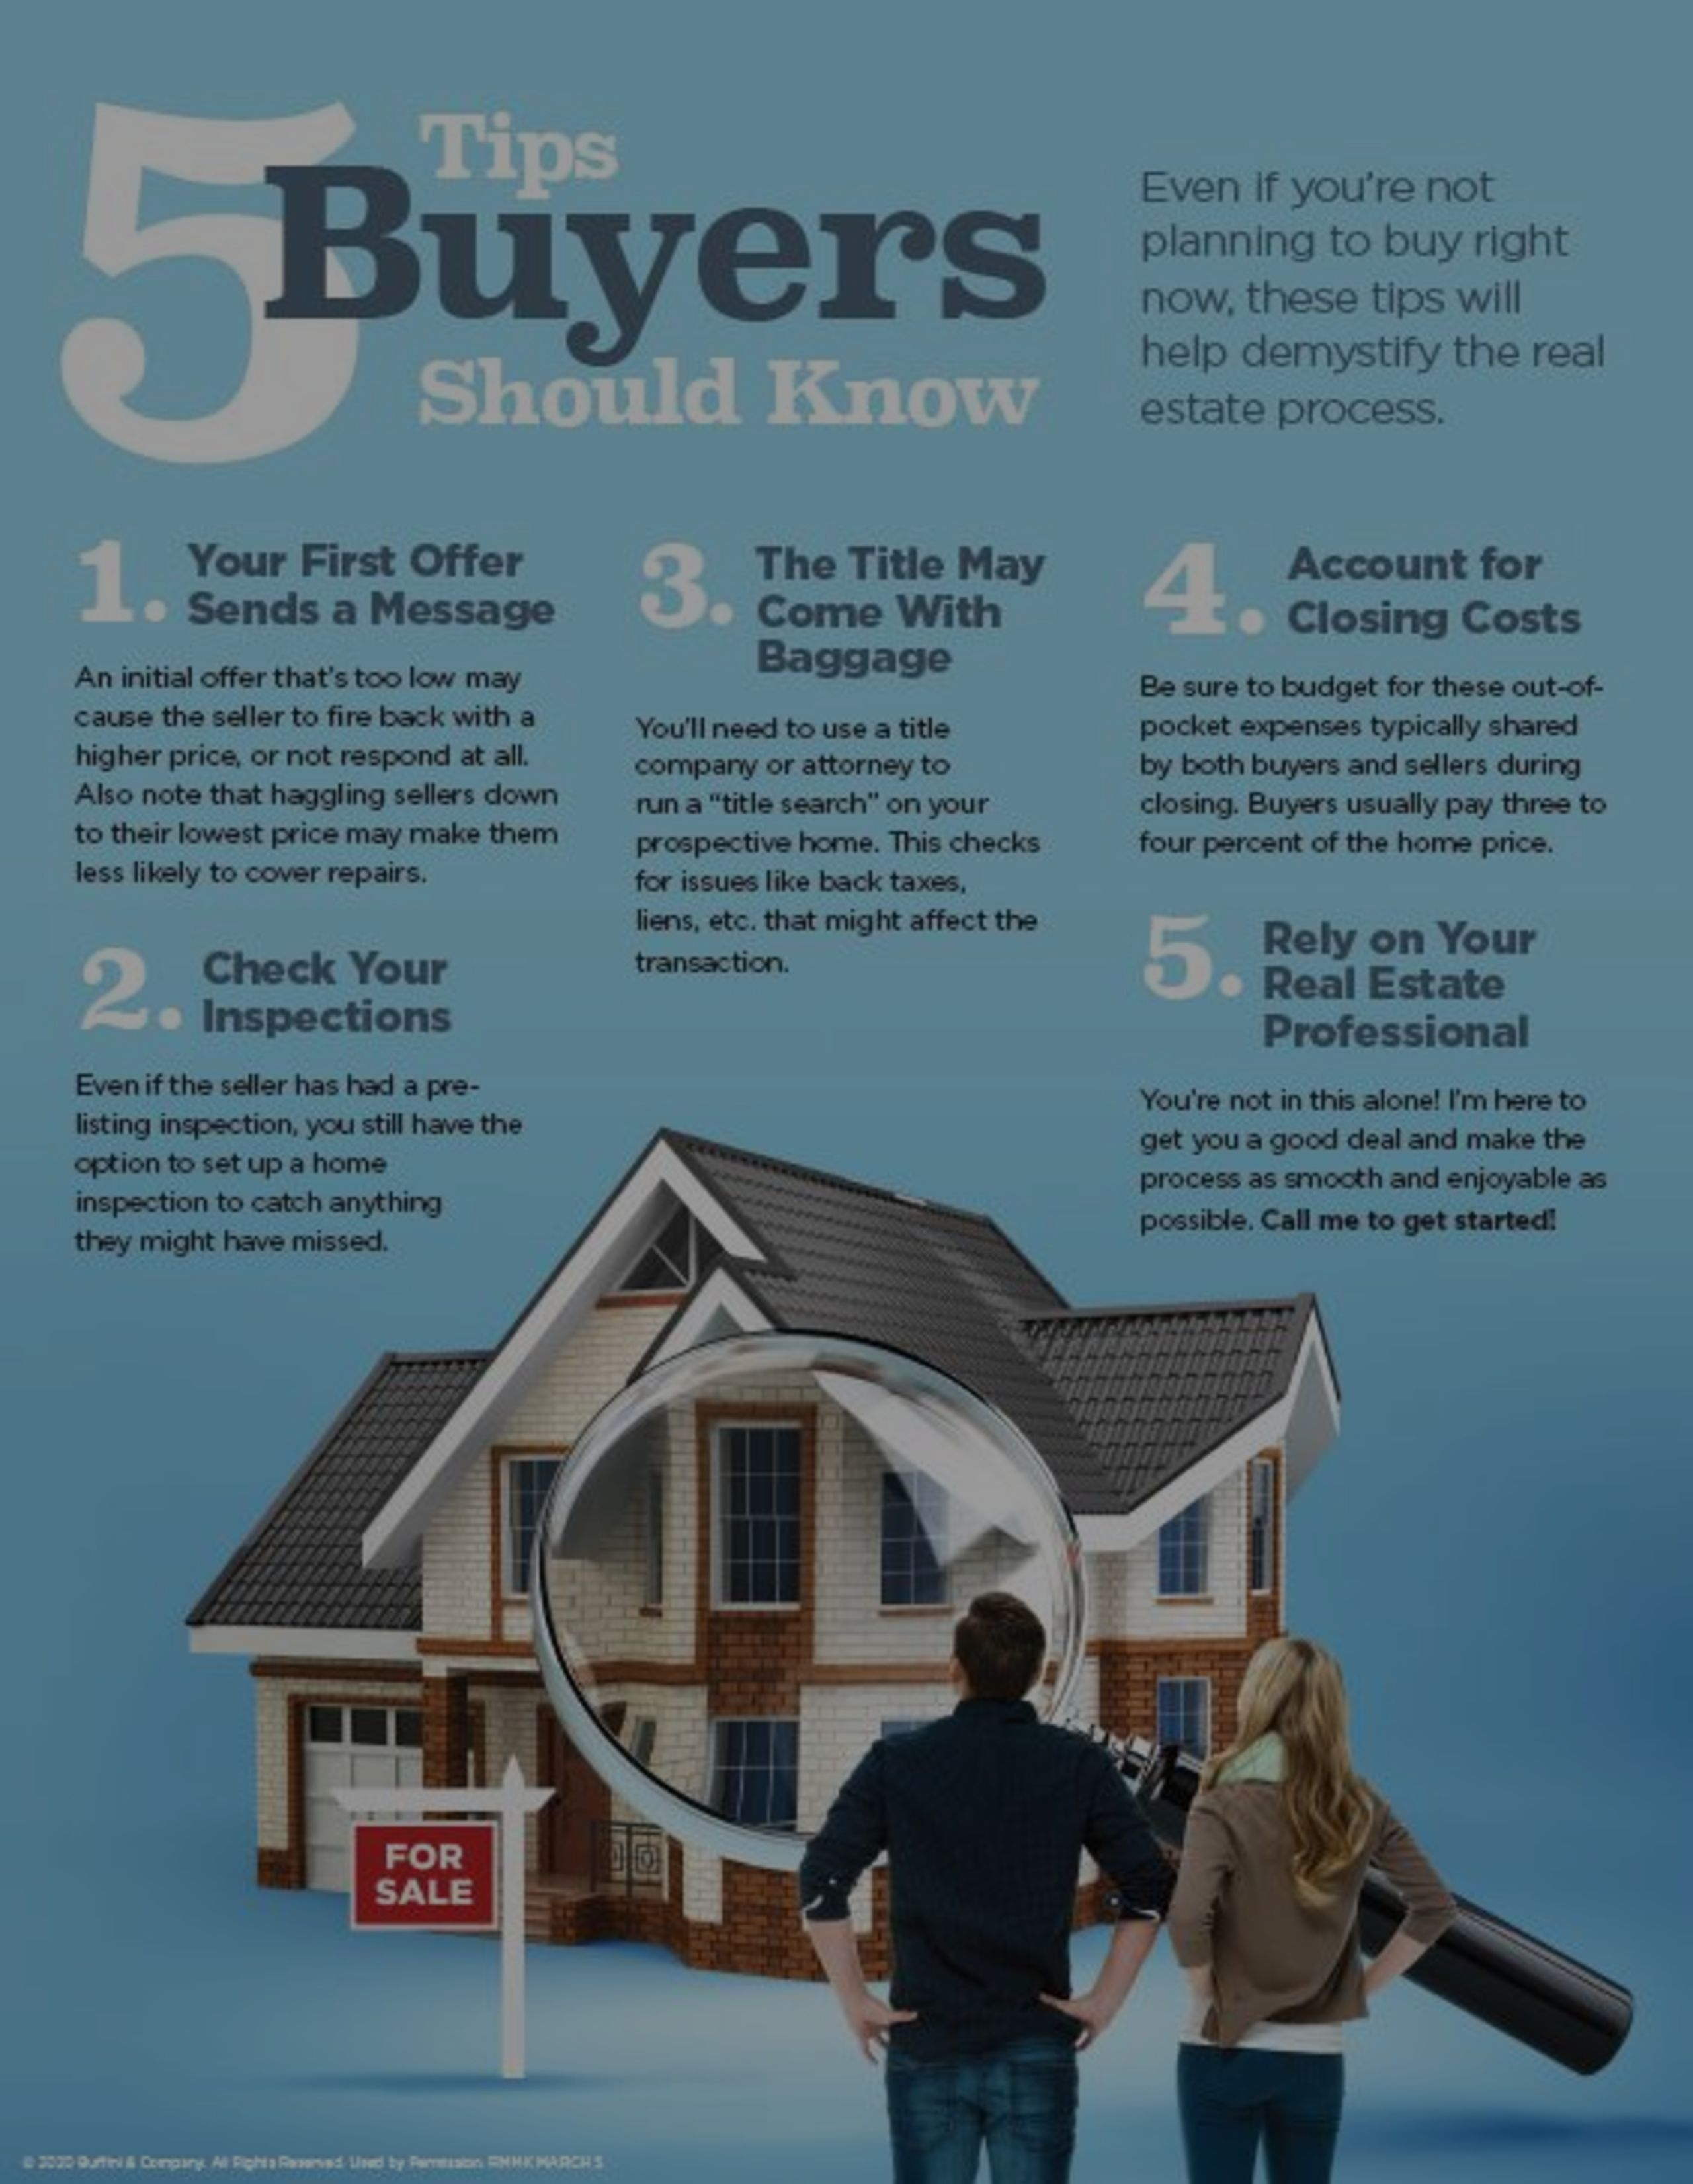 5 Tips Buyers Should Know